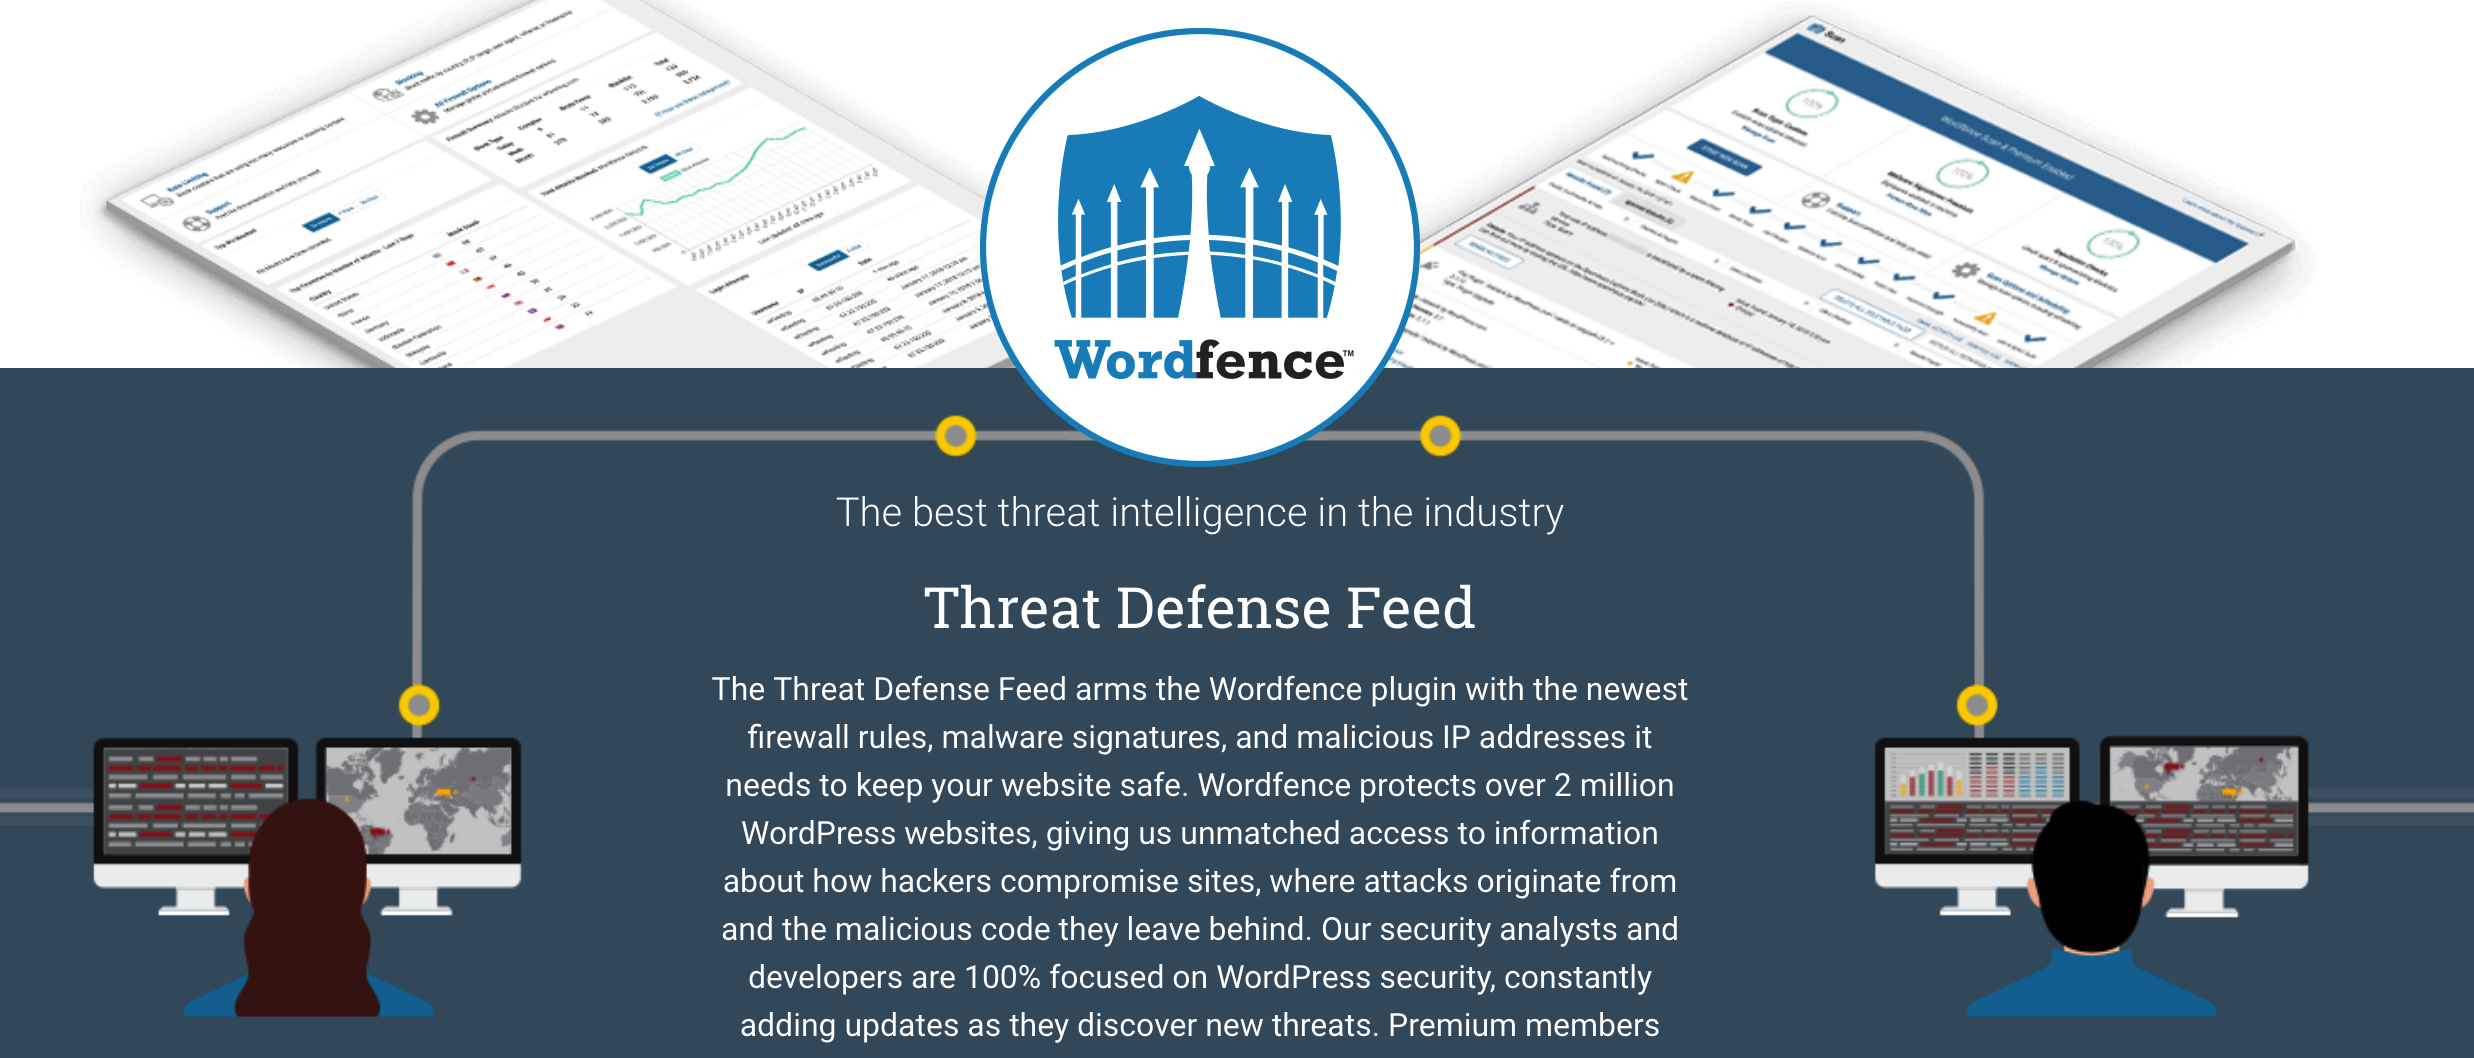 Wordfence WordPress firewall Plugin